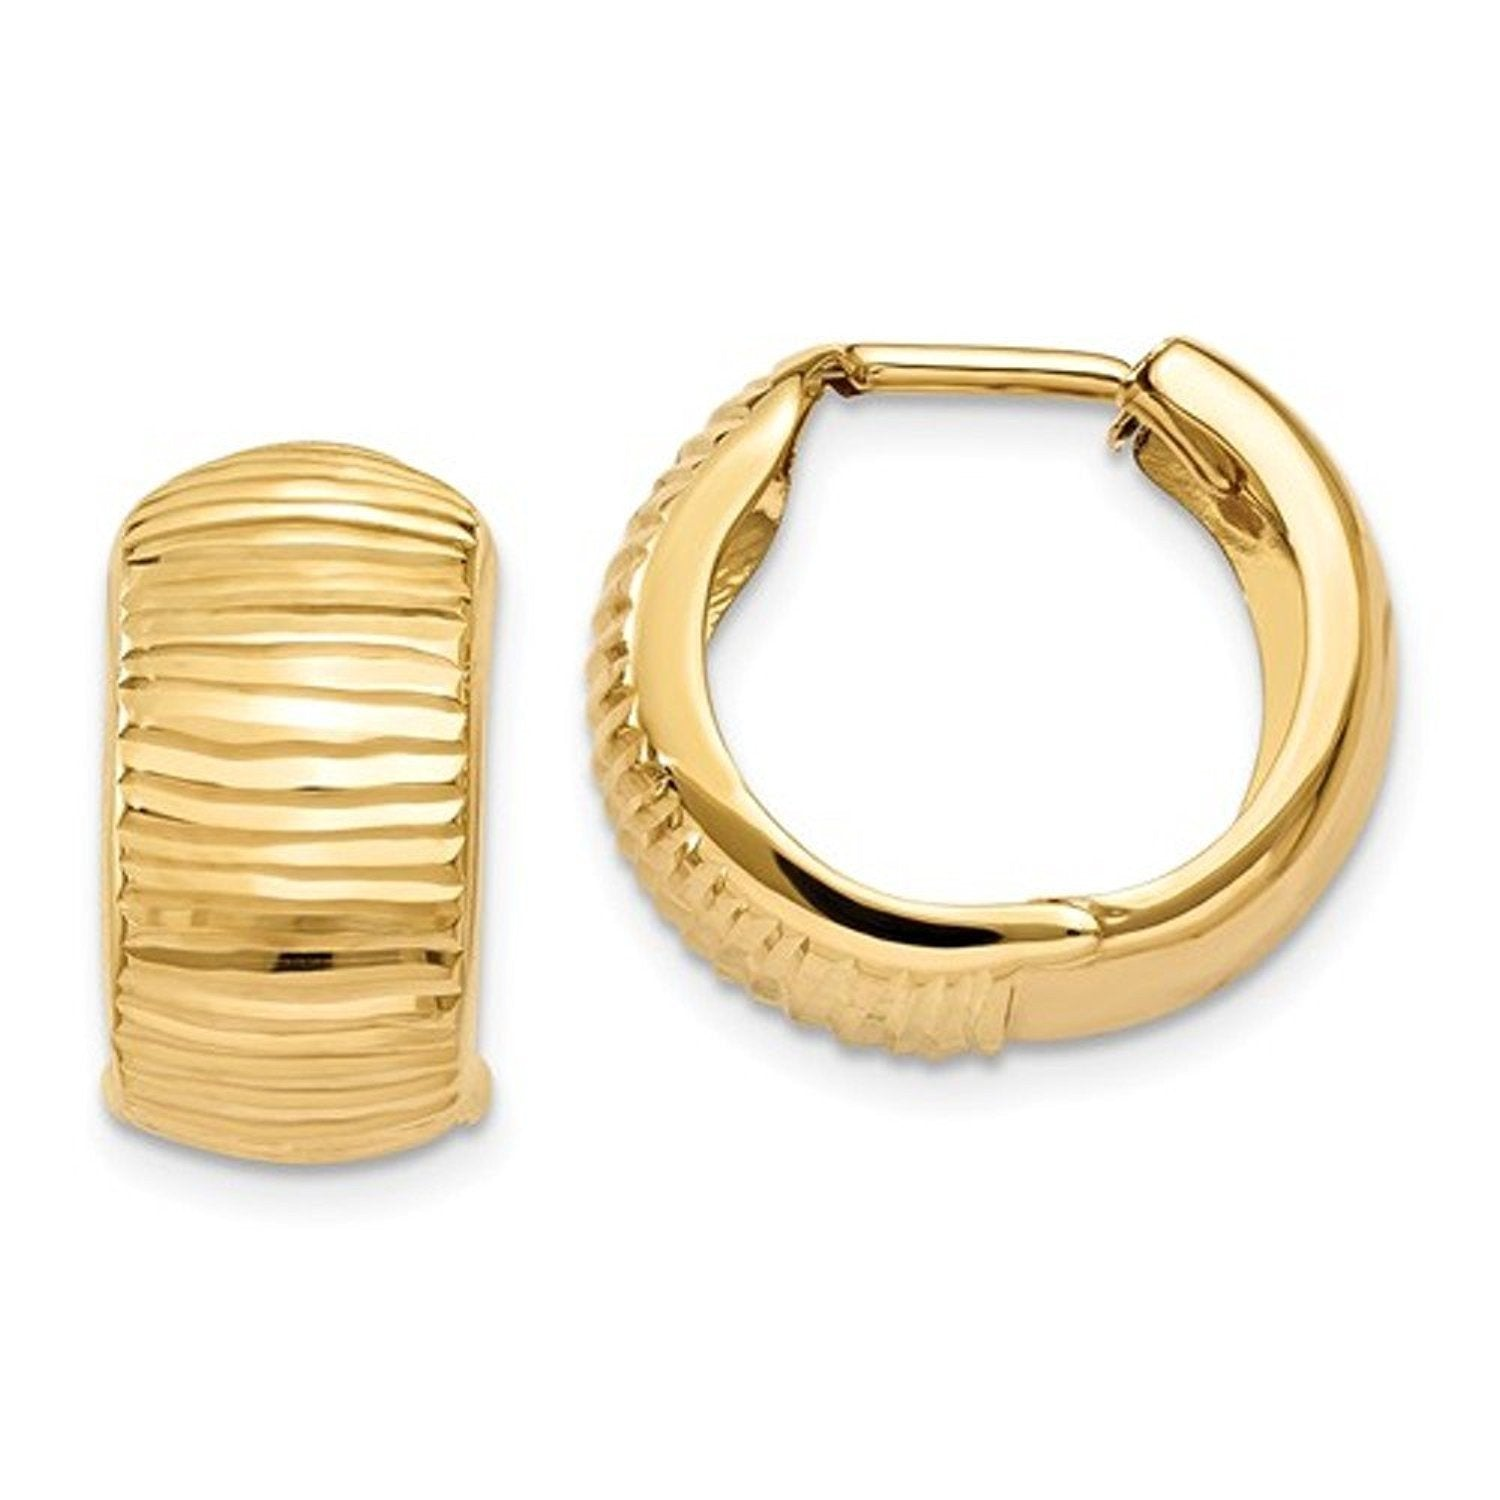 14k Yellow Gold Textured Huggie Hinged Hoop Earrings 15mm x 15mm x 7mm